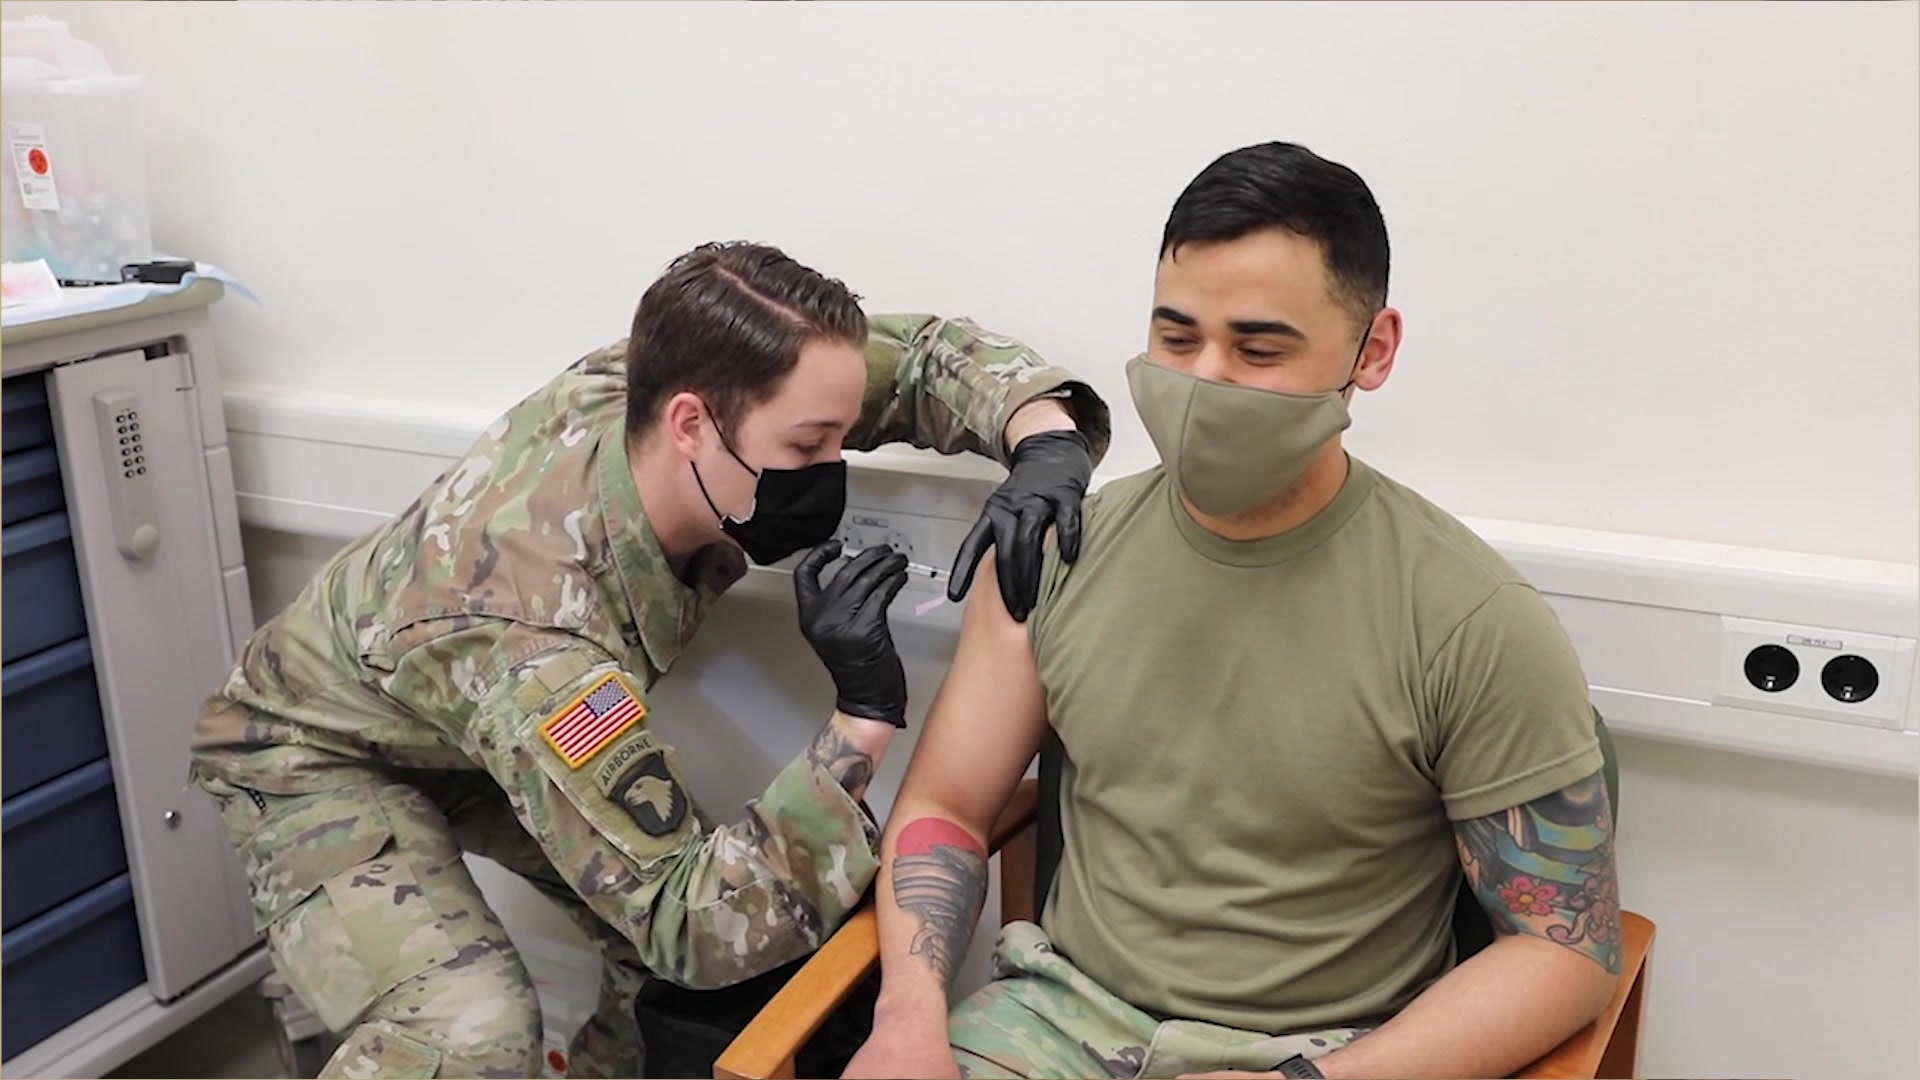 Senior Nurse Adviser for the 88th Readiness Division, Lt. Col. Daniel Gray, discusses the lifting of the pause for one of the vaccines for COVID-19. He also stresses the safety and importance of receiving the vaccine.